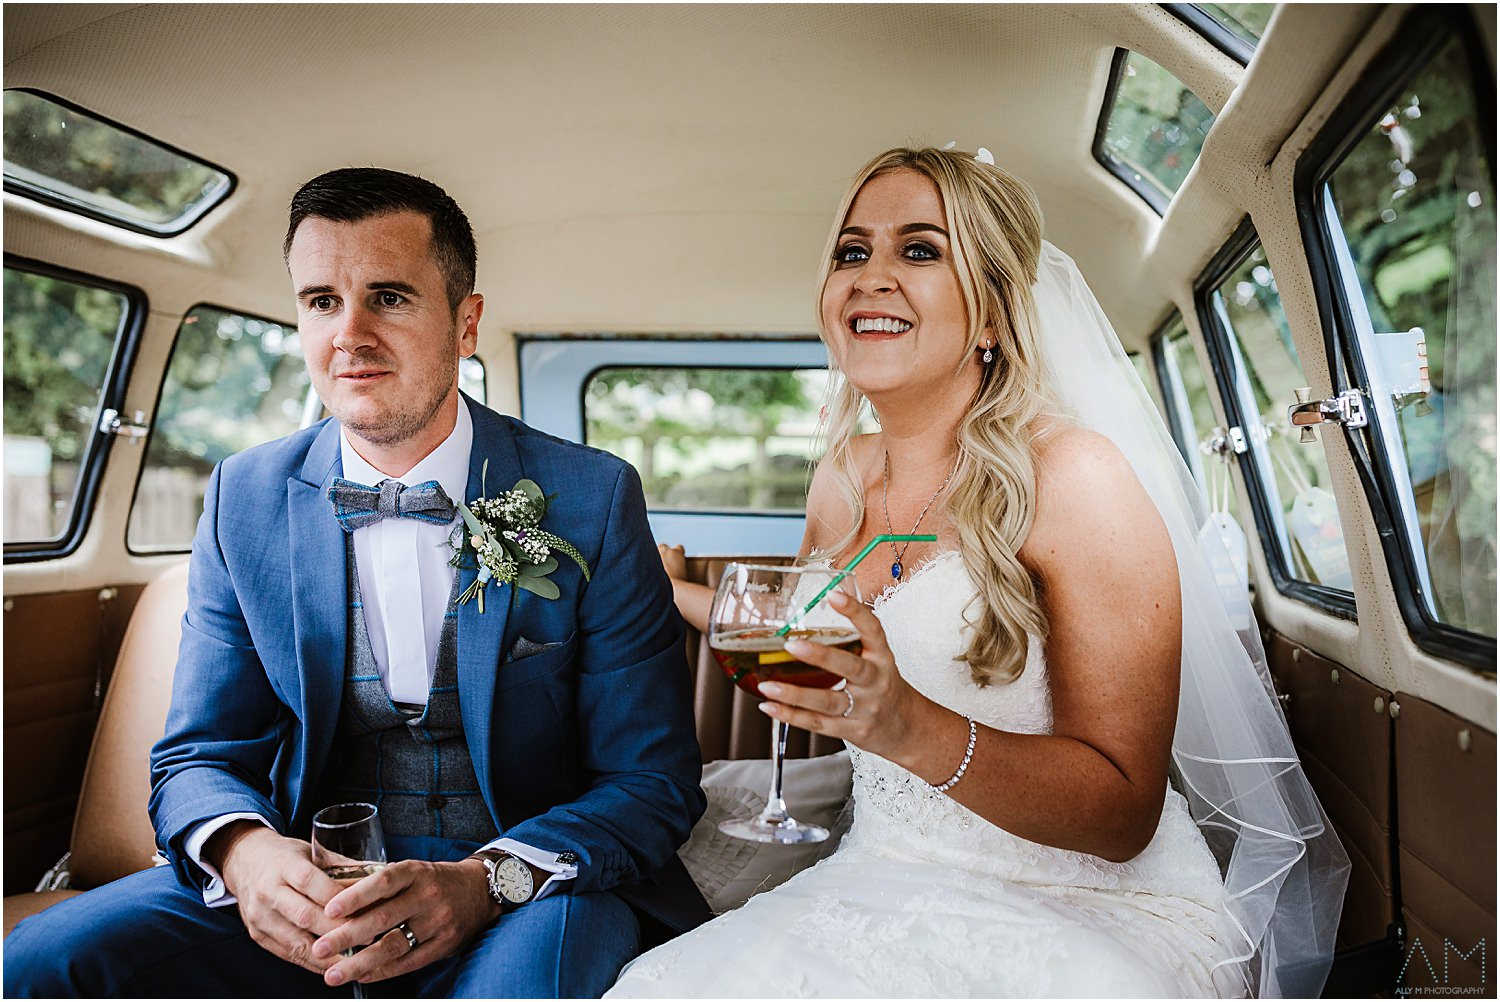 Bride and groom in campervan